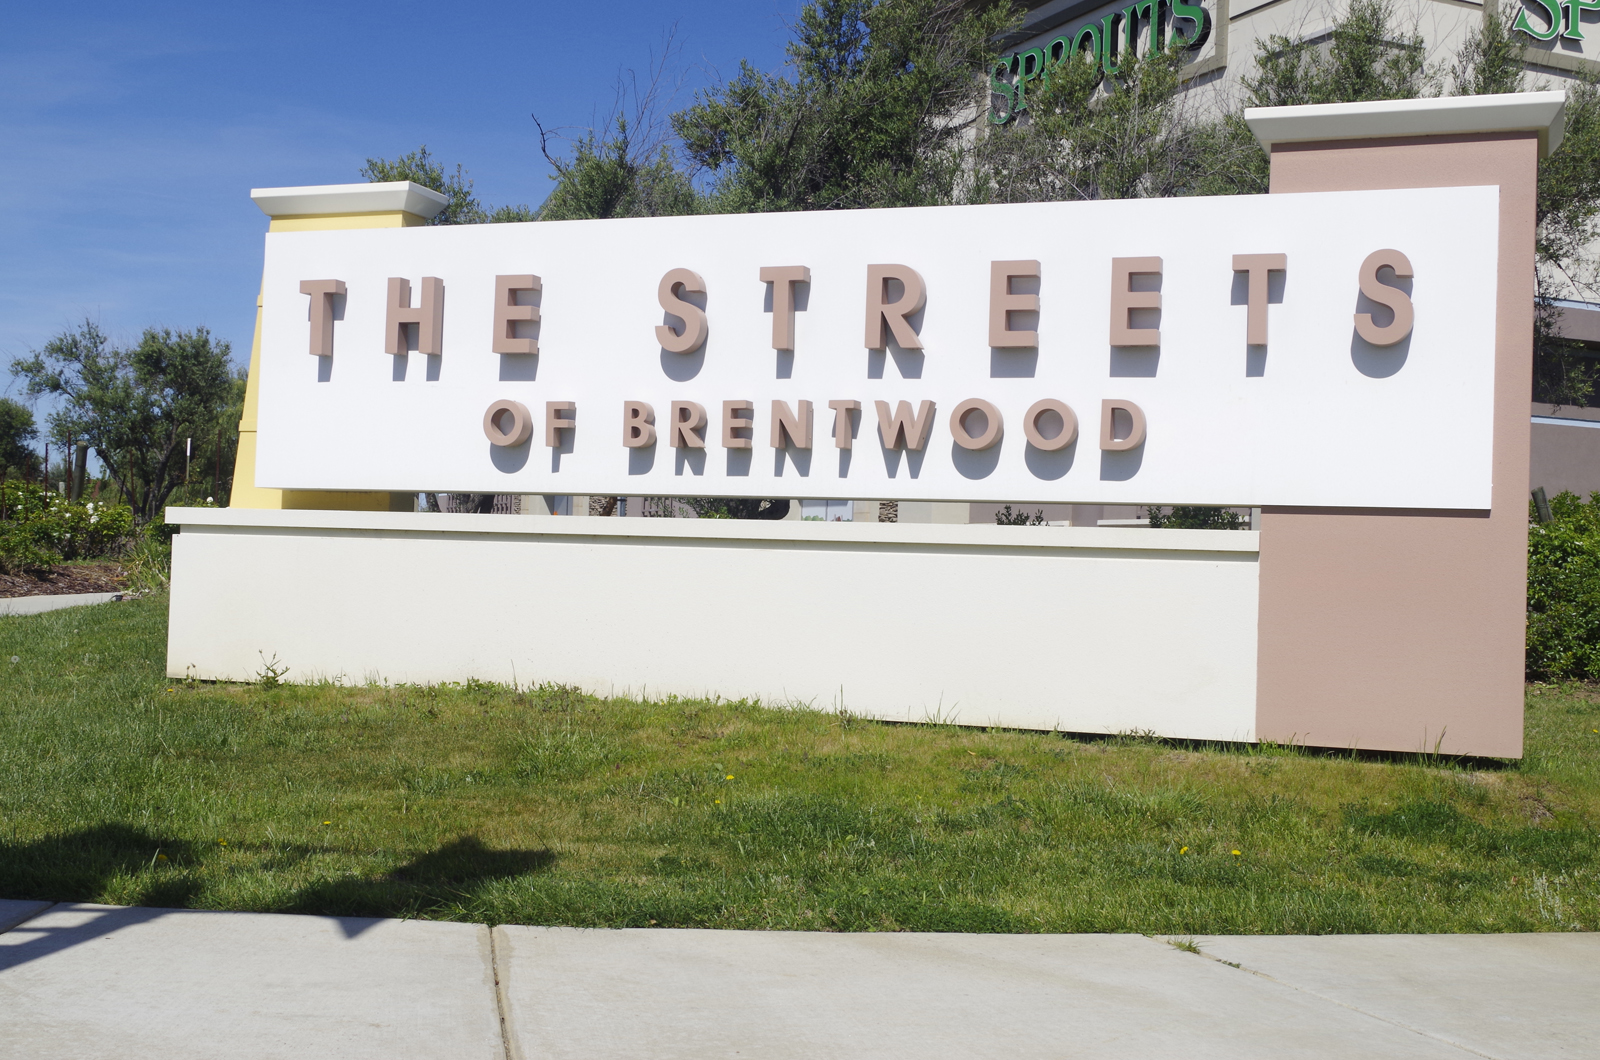 Streets of Brentwood Sig